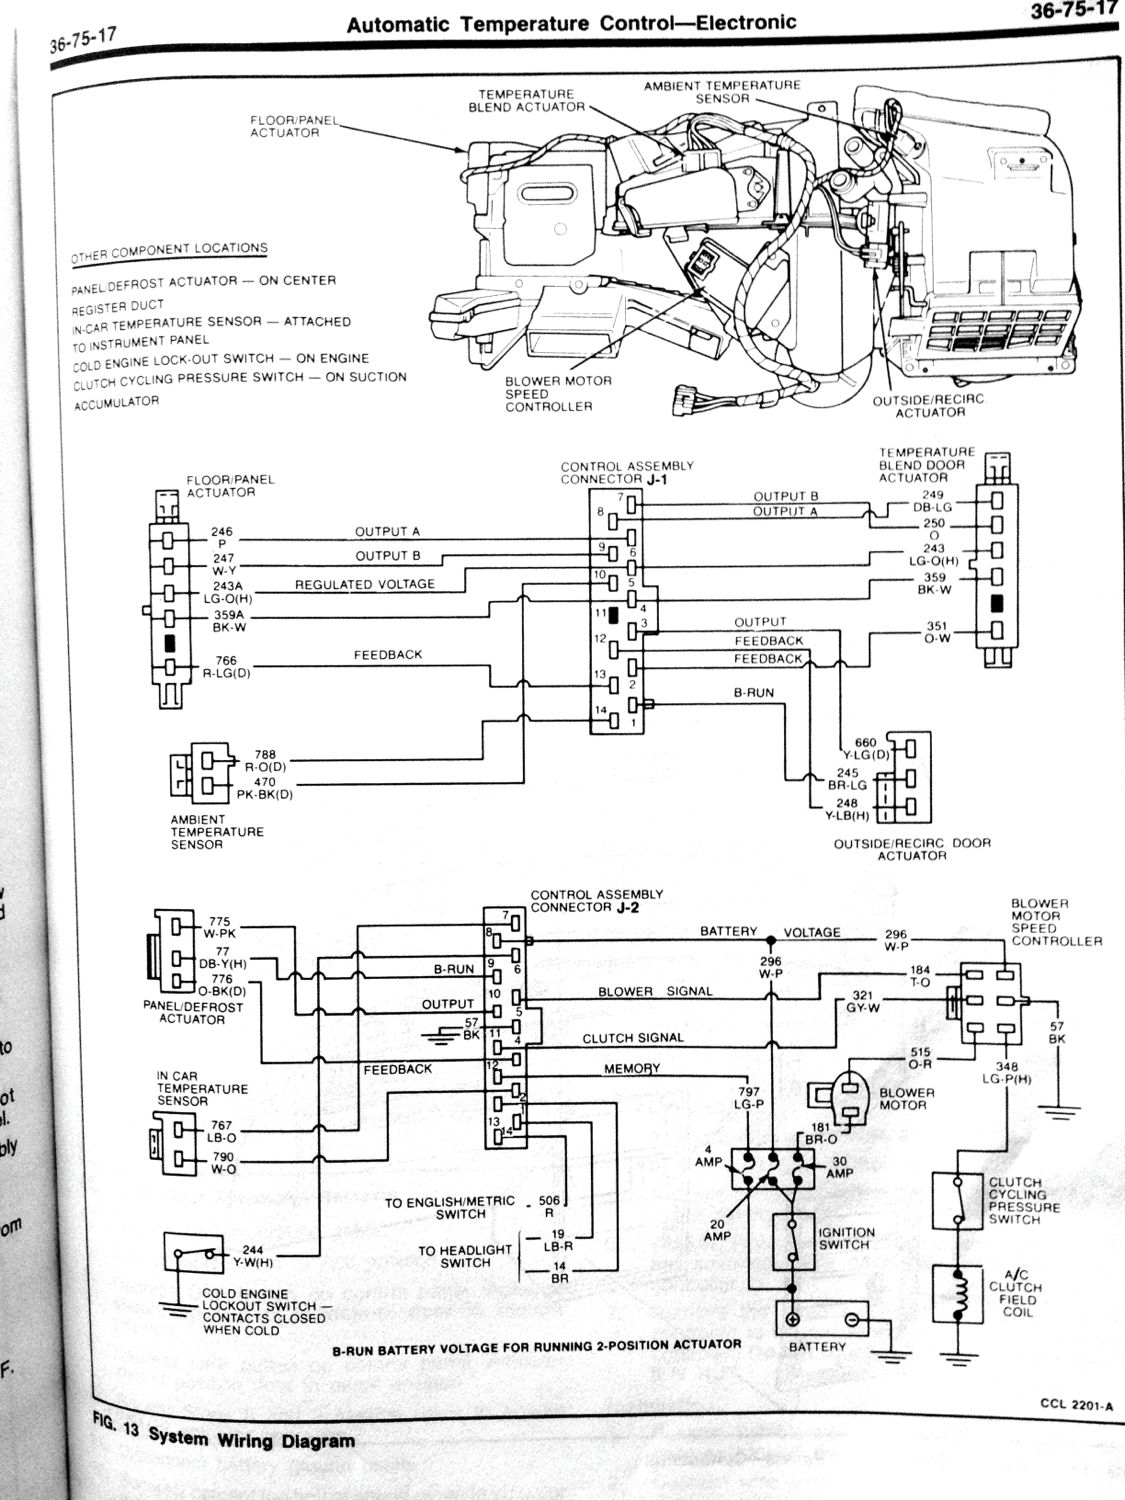 Lincoln Mark Vii Fuse Box Wiring Library 1994 Viii Diagram Http Thelincolnmarkviicluborg Gallery Albums Album81 Acwiring1984 Big The